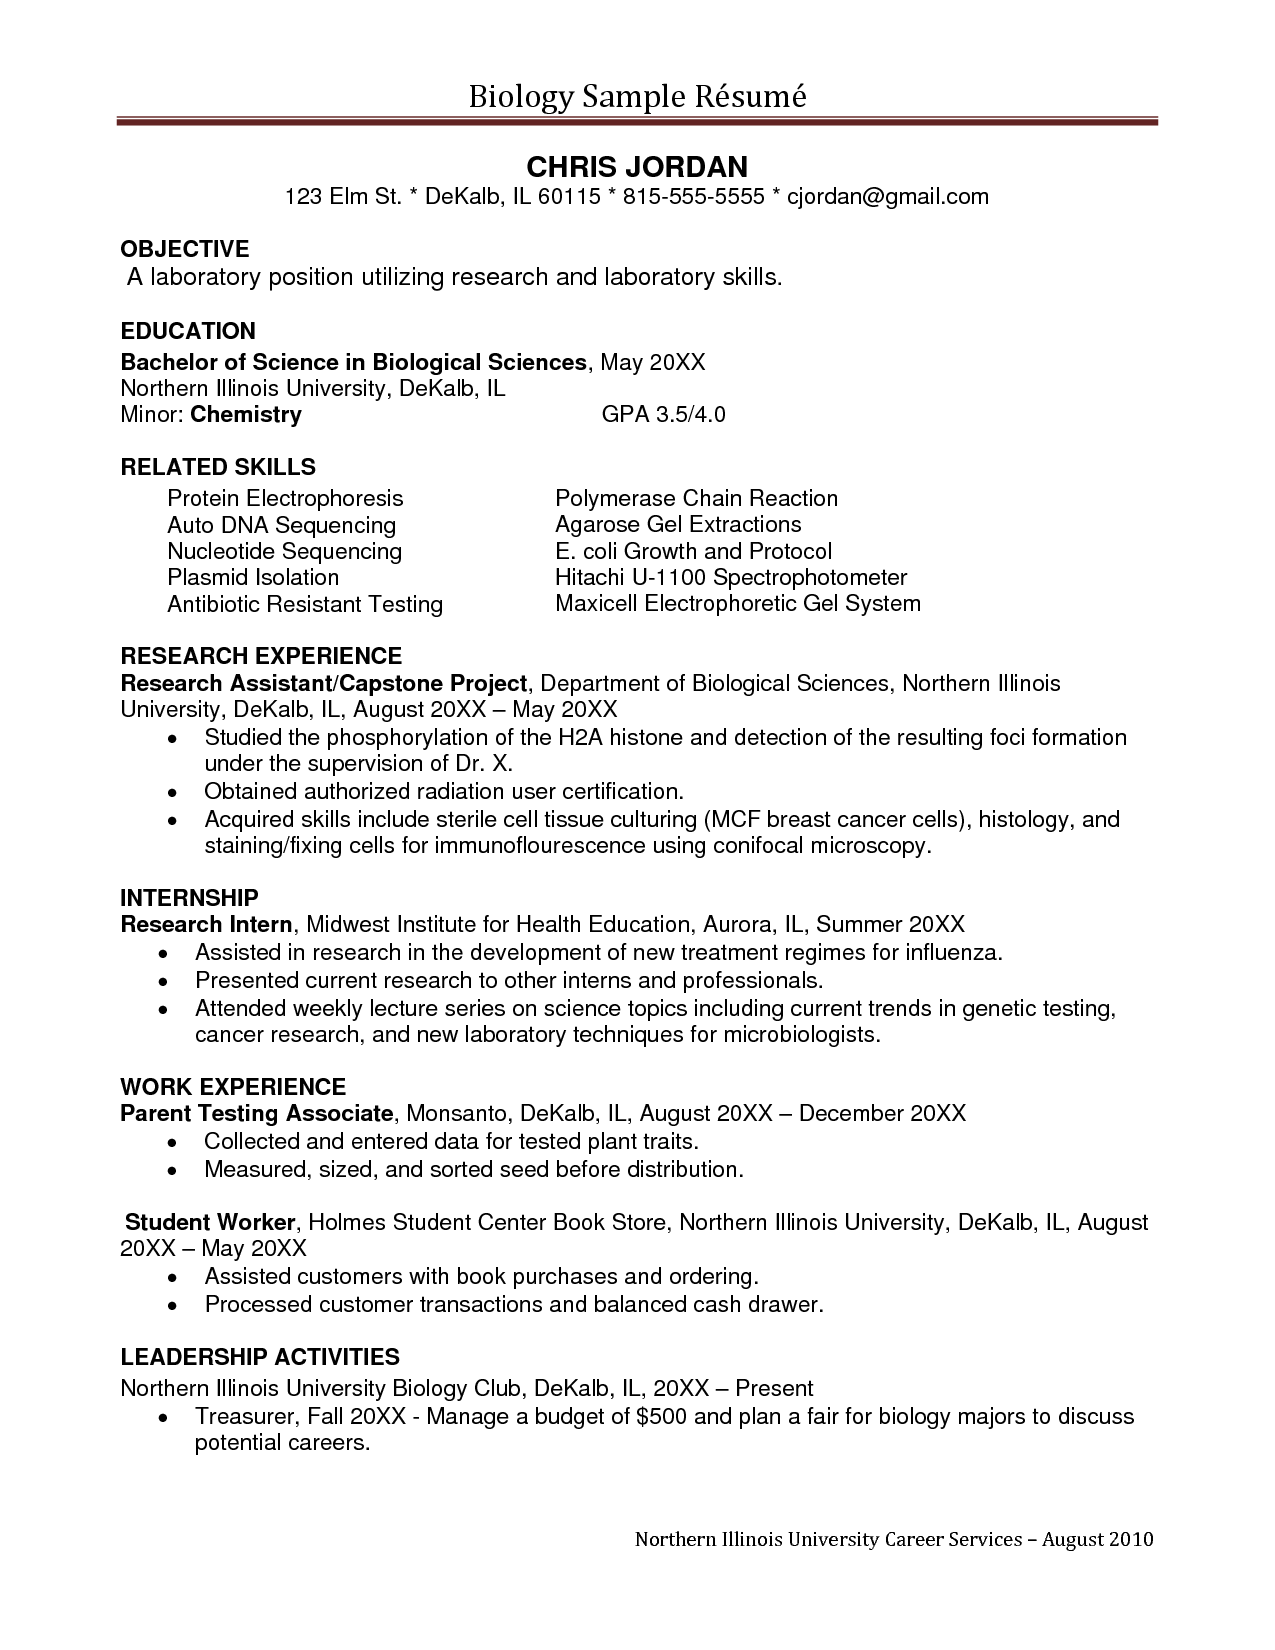 How To Write A Resume Objective Sample Undergraduate Research Assistant Resume Sampleĺ